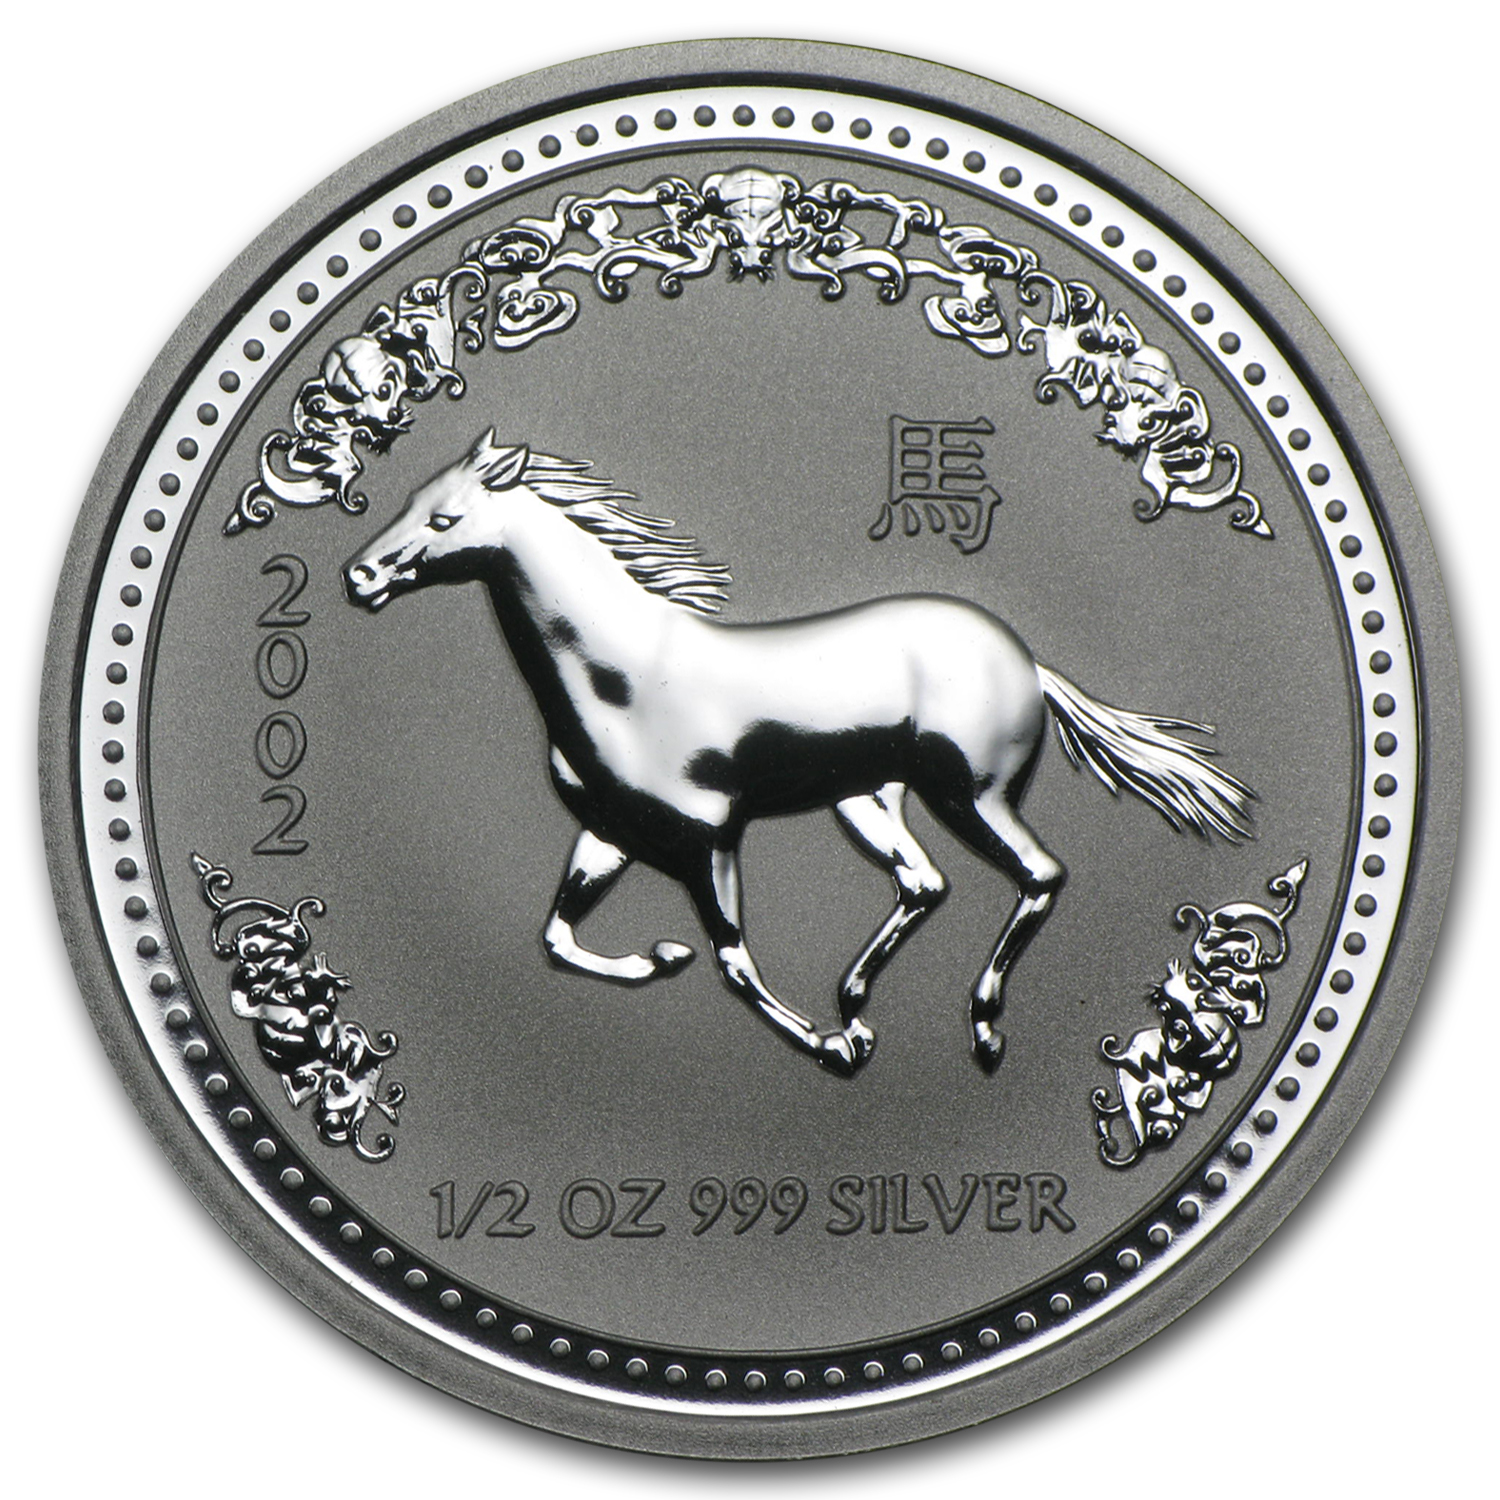 2002 1/2 oz Silver Lunar Year of the Horse (Series I)